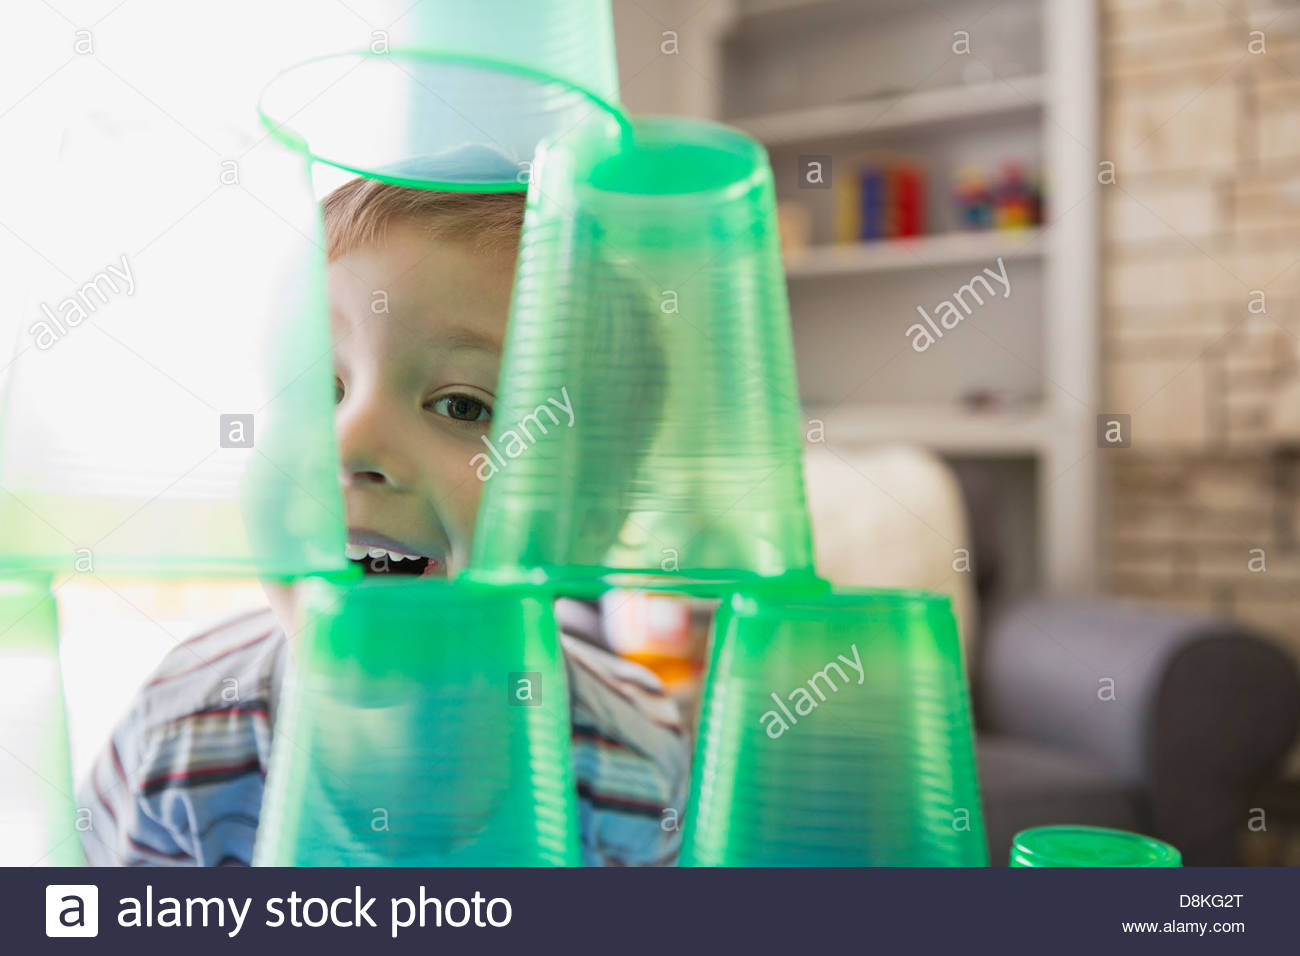 Smiling boy playing with plastic cups - Stock Image